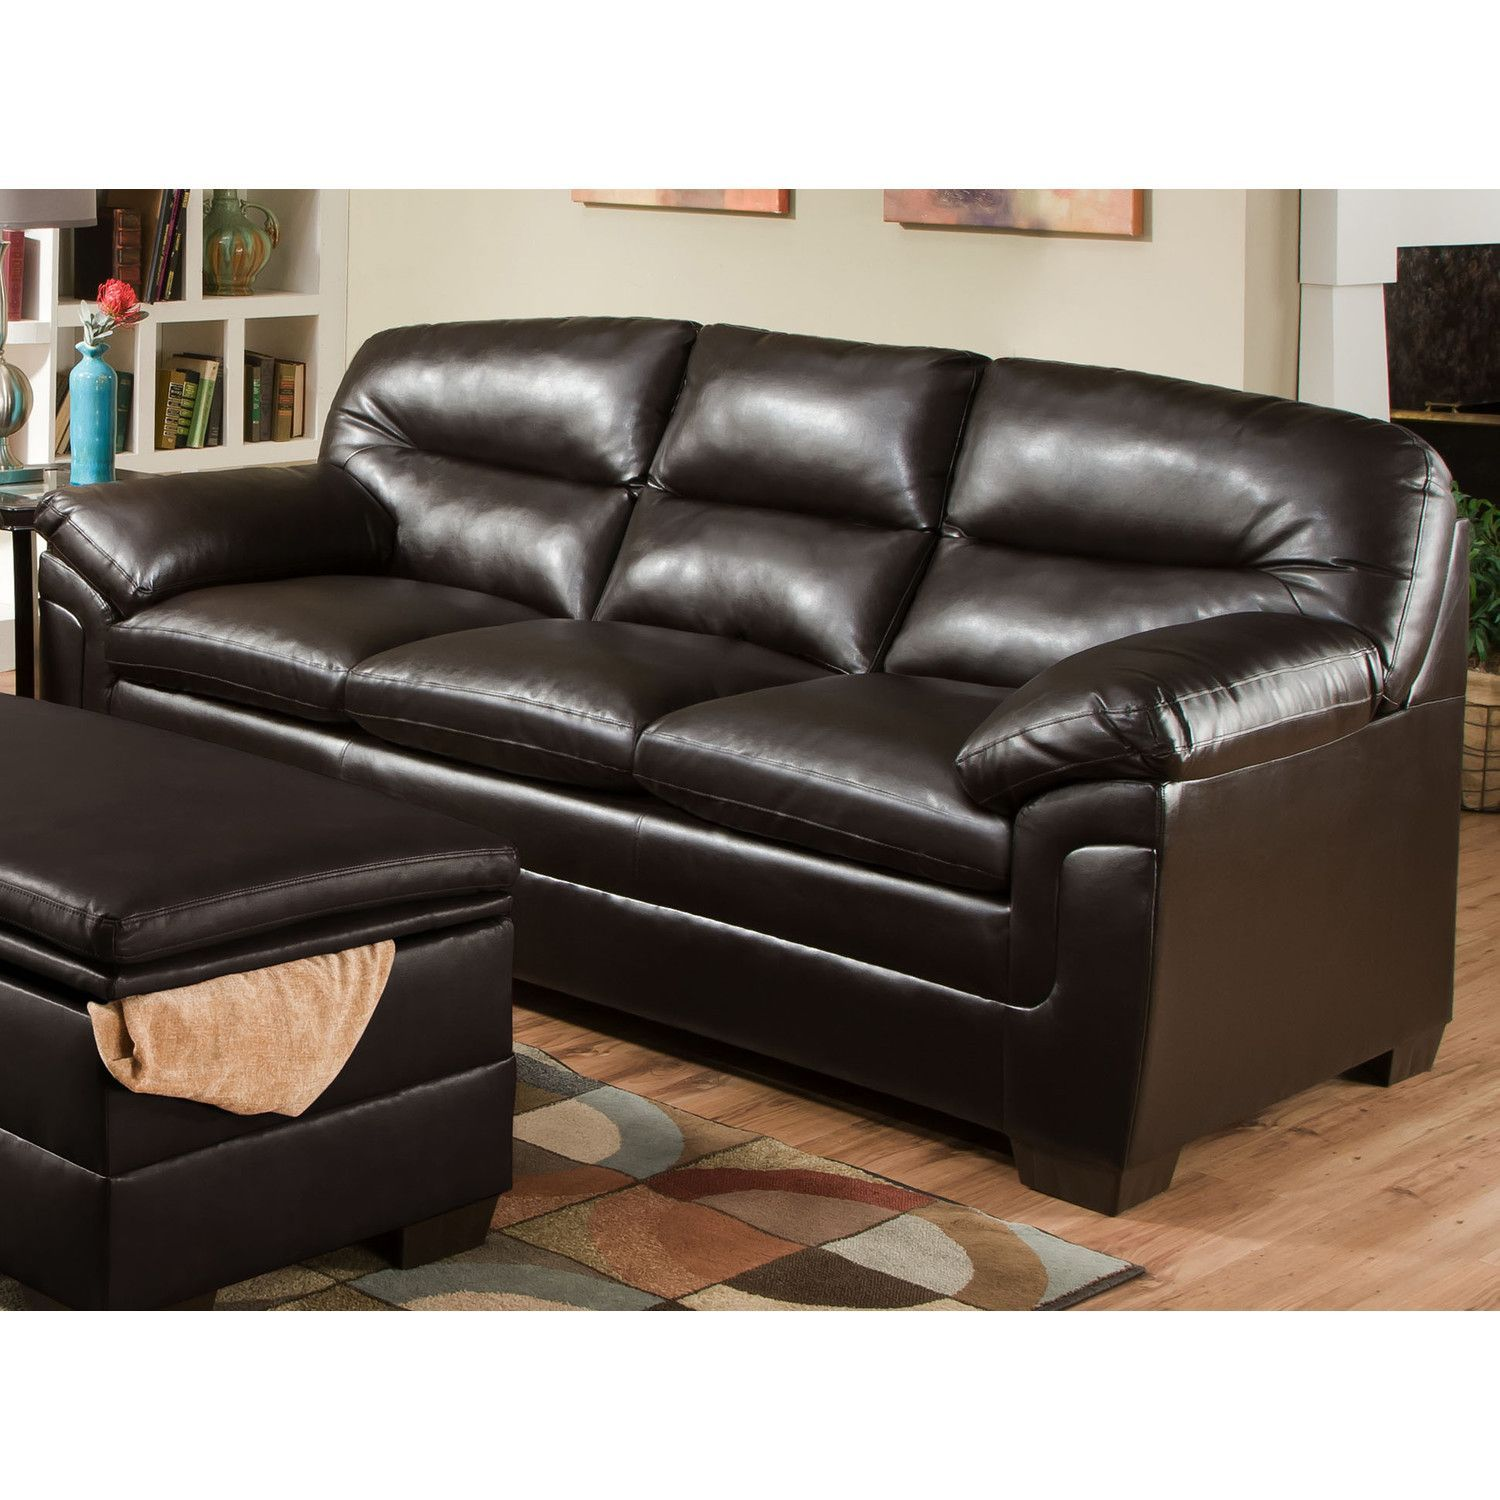 the chair best bed buy a leather properly size couch sleeper hide do king seater sofa loveseat